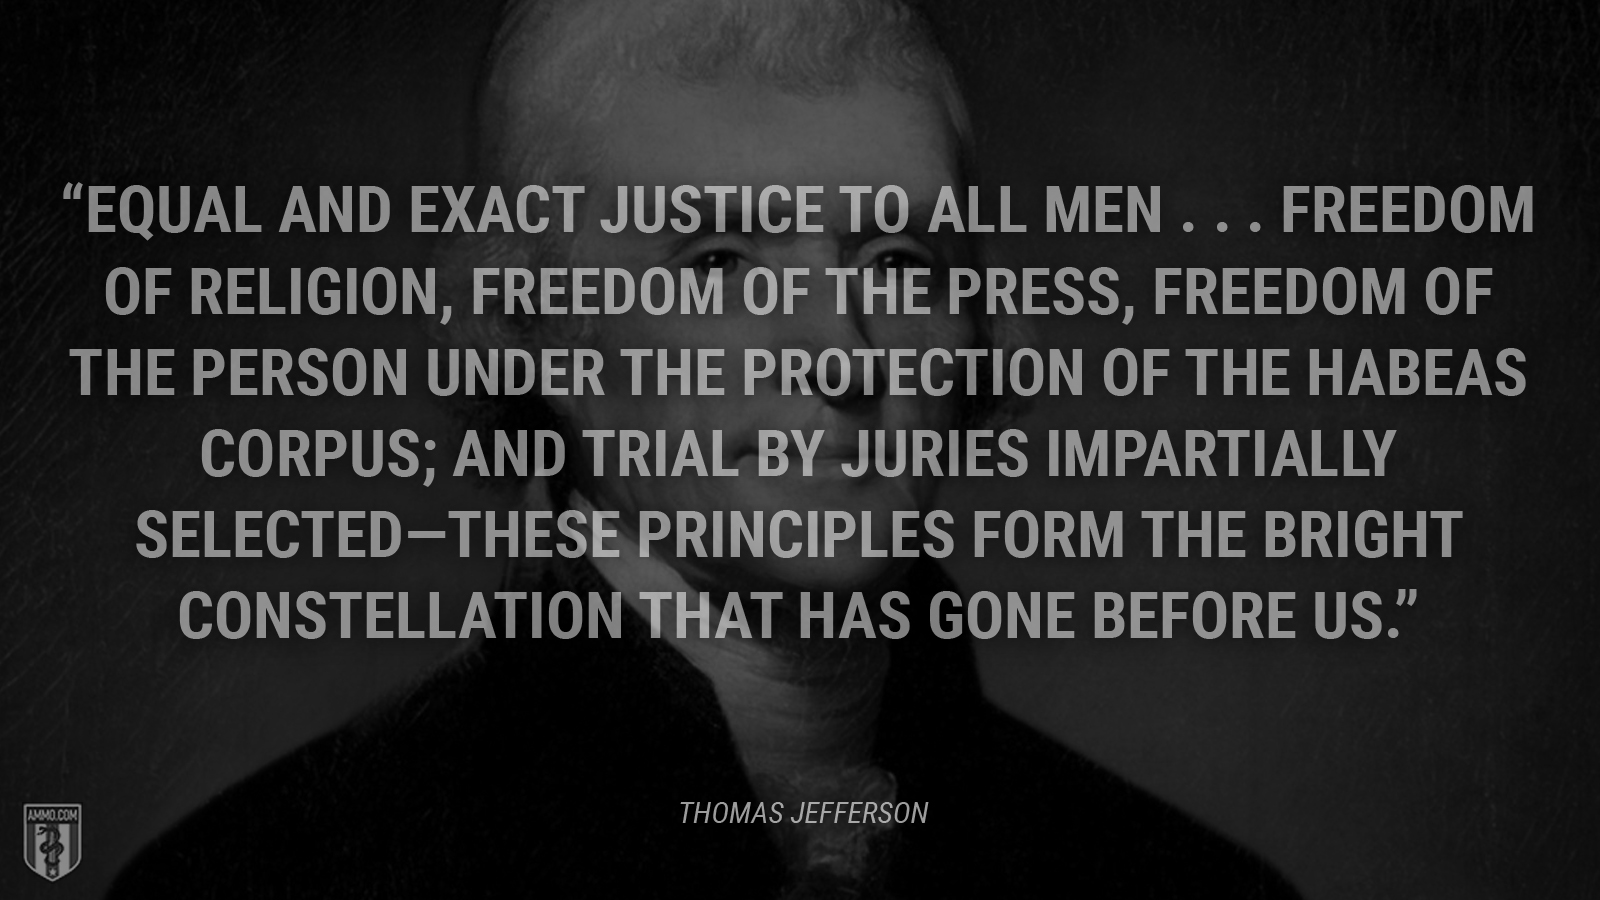 """Equal and exact justice to all men . . . freedom of religion, freedom of the press, freedom of the person under the protection of the habeas corpus; and trial by juries impartially selected—these principles form the bright constellation that has gone before us."" - Thomas Jefferson"